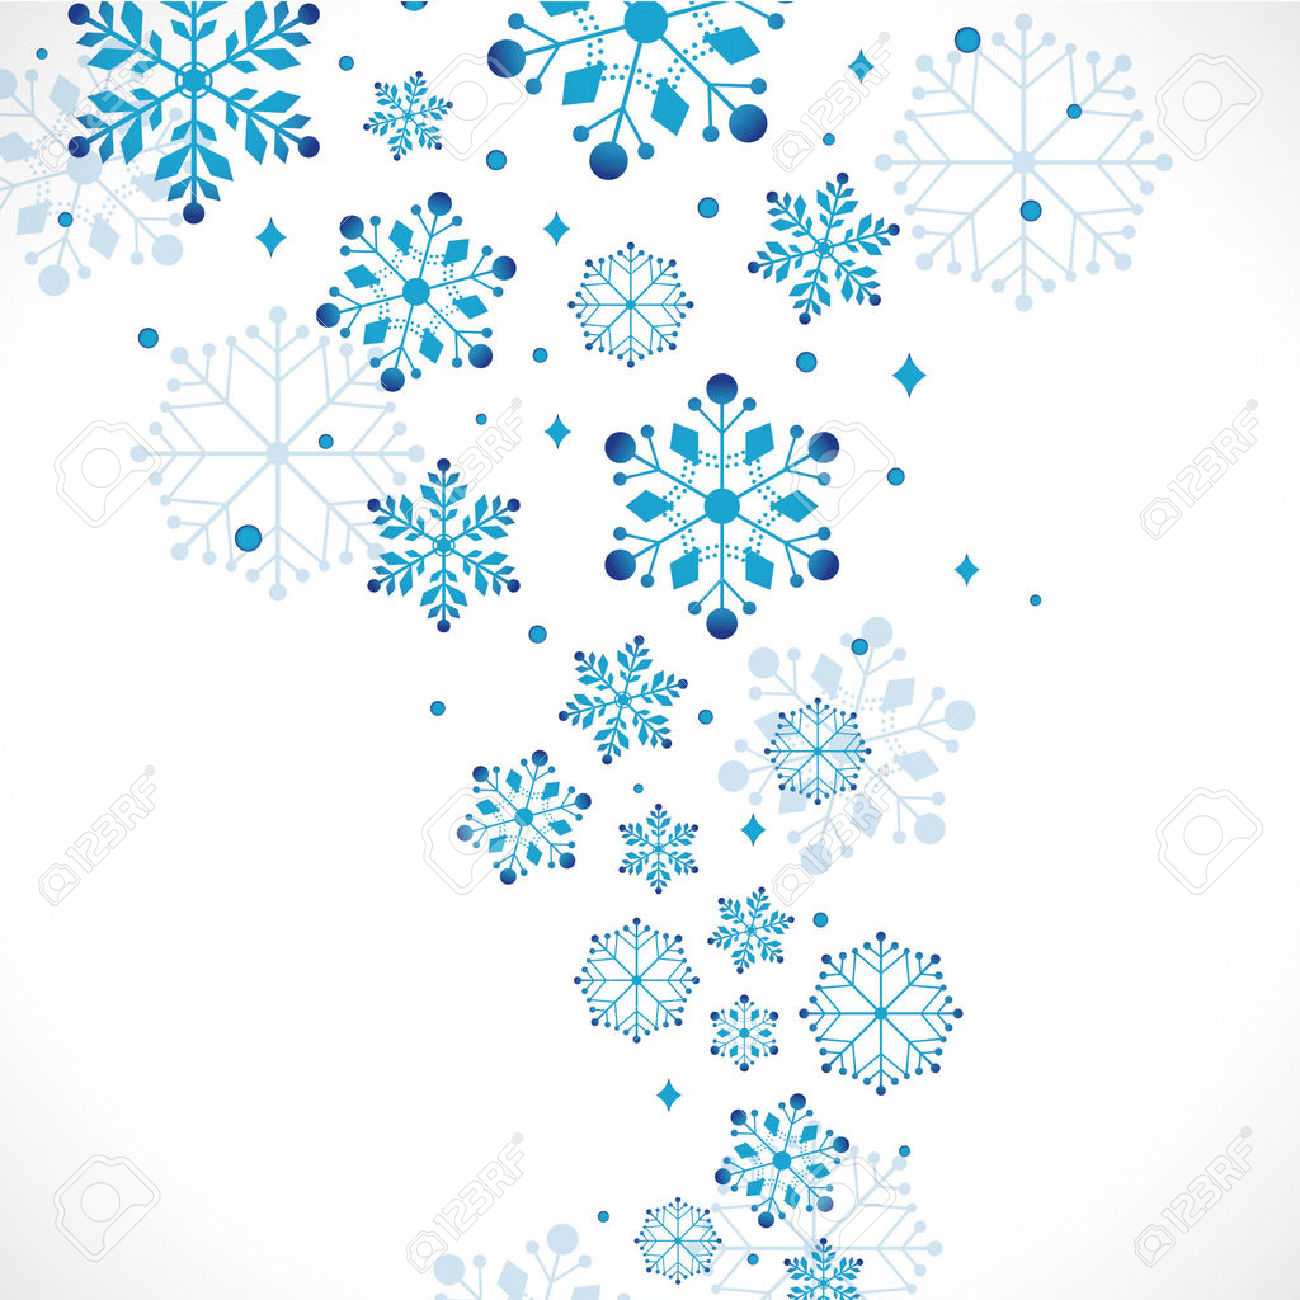 Snow clipart free 5 » Clipart Station.